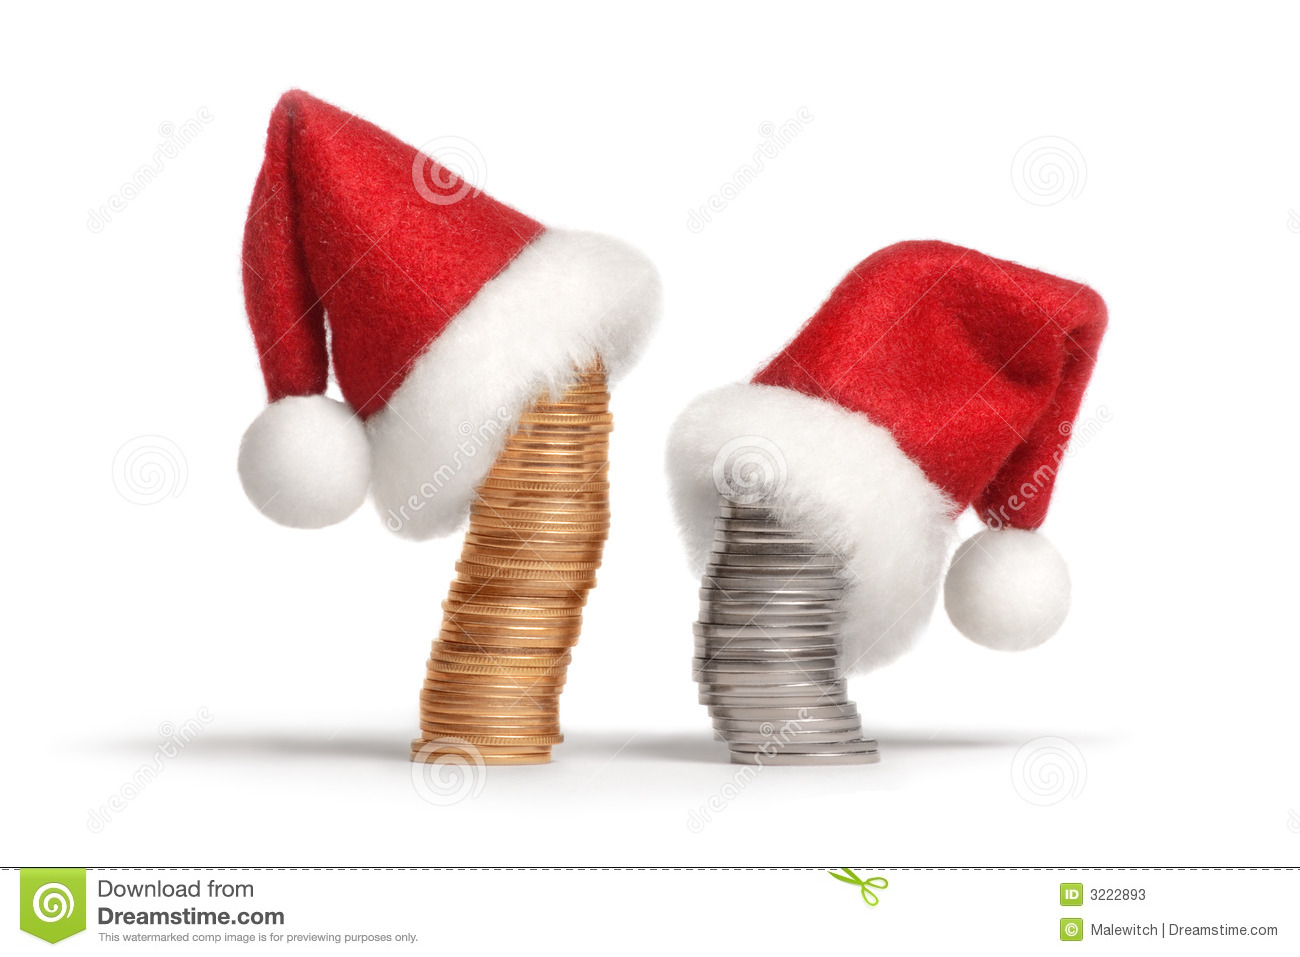 7b490cc9270f8 Christmas investments 1 stock image. Image of holiday - 3222893